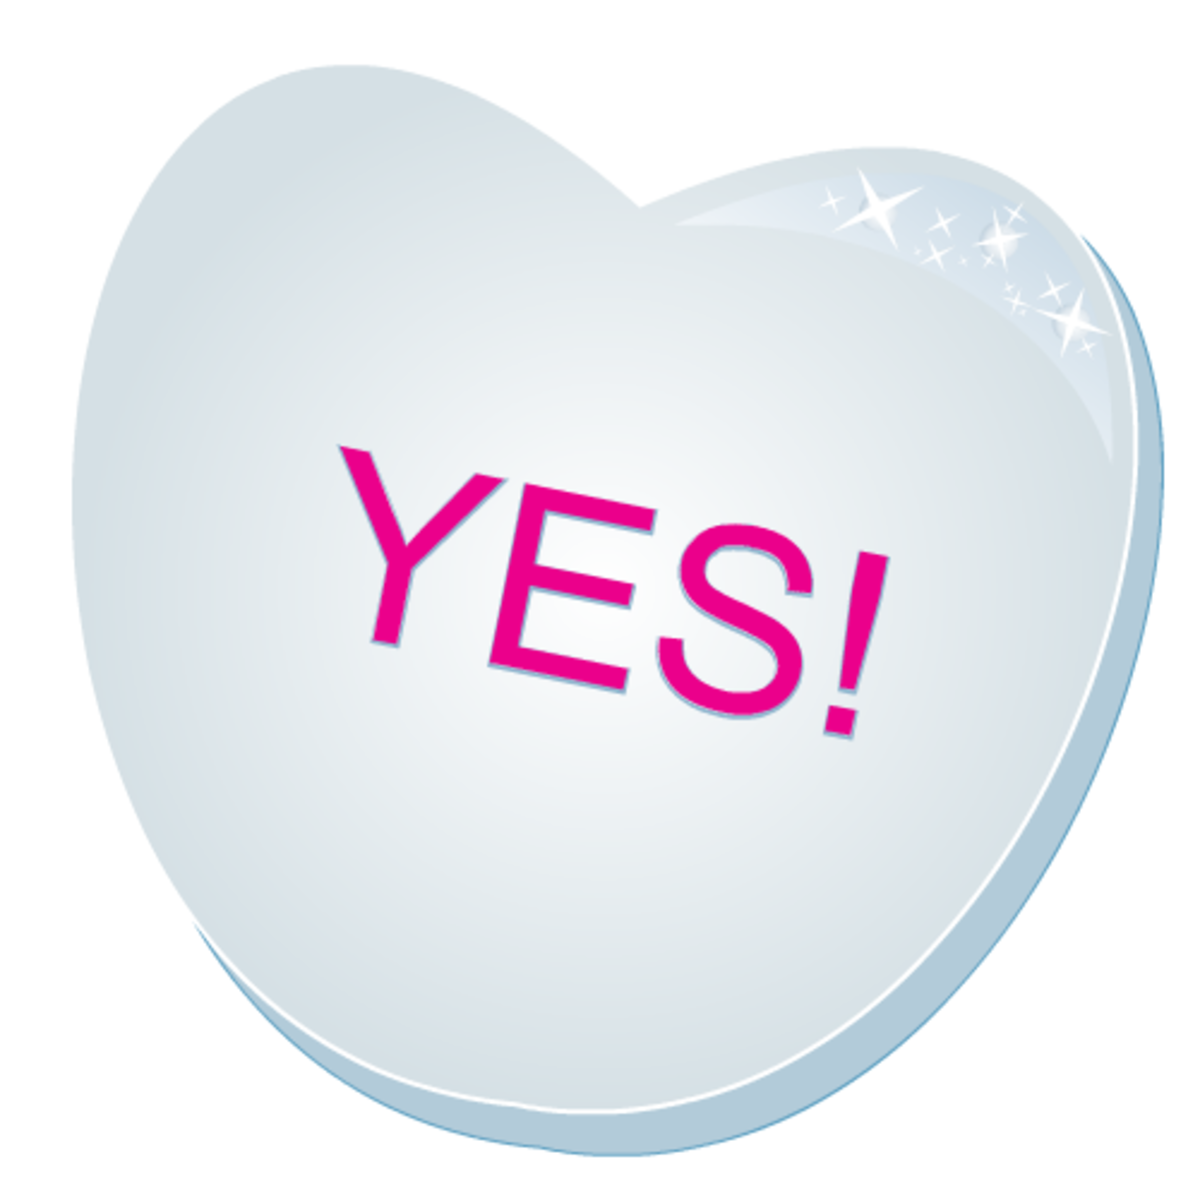 Valentines clip art: Yes! blue candy heart